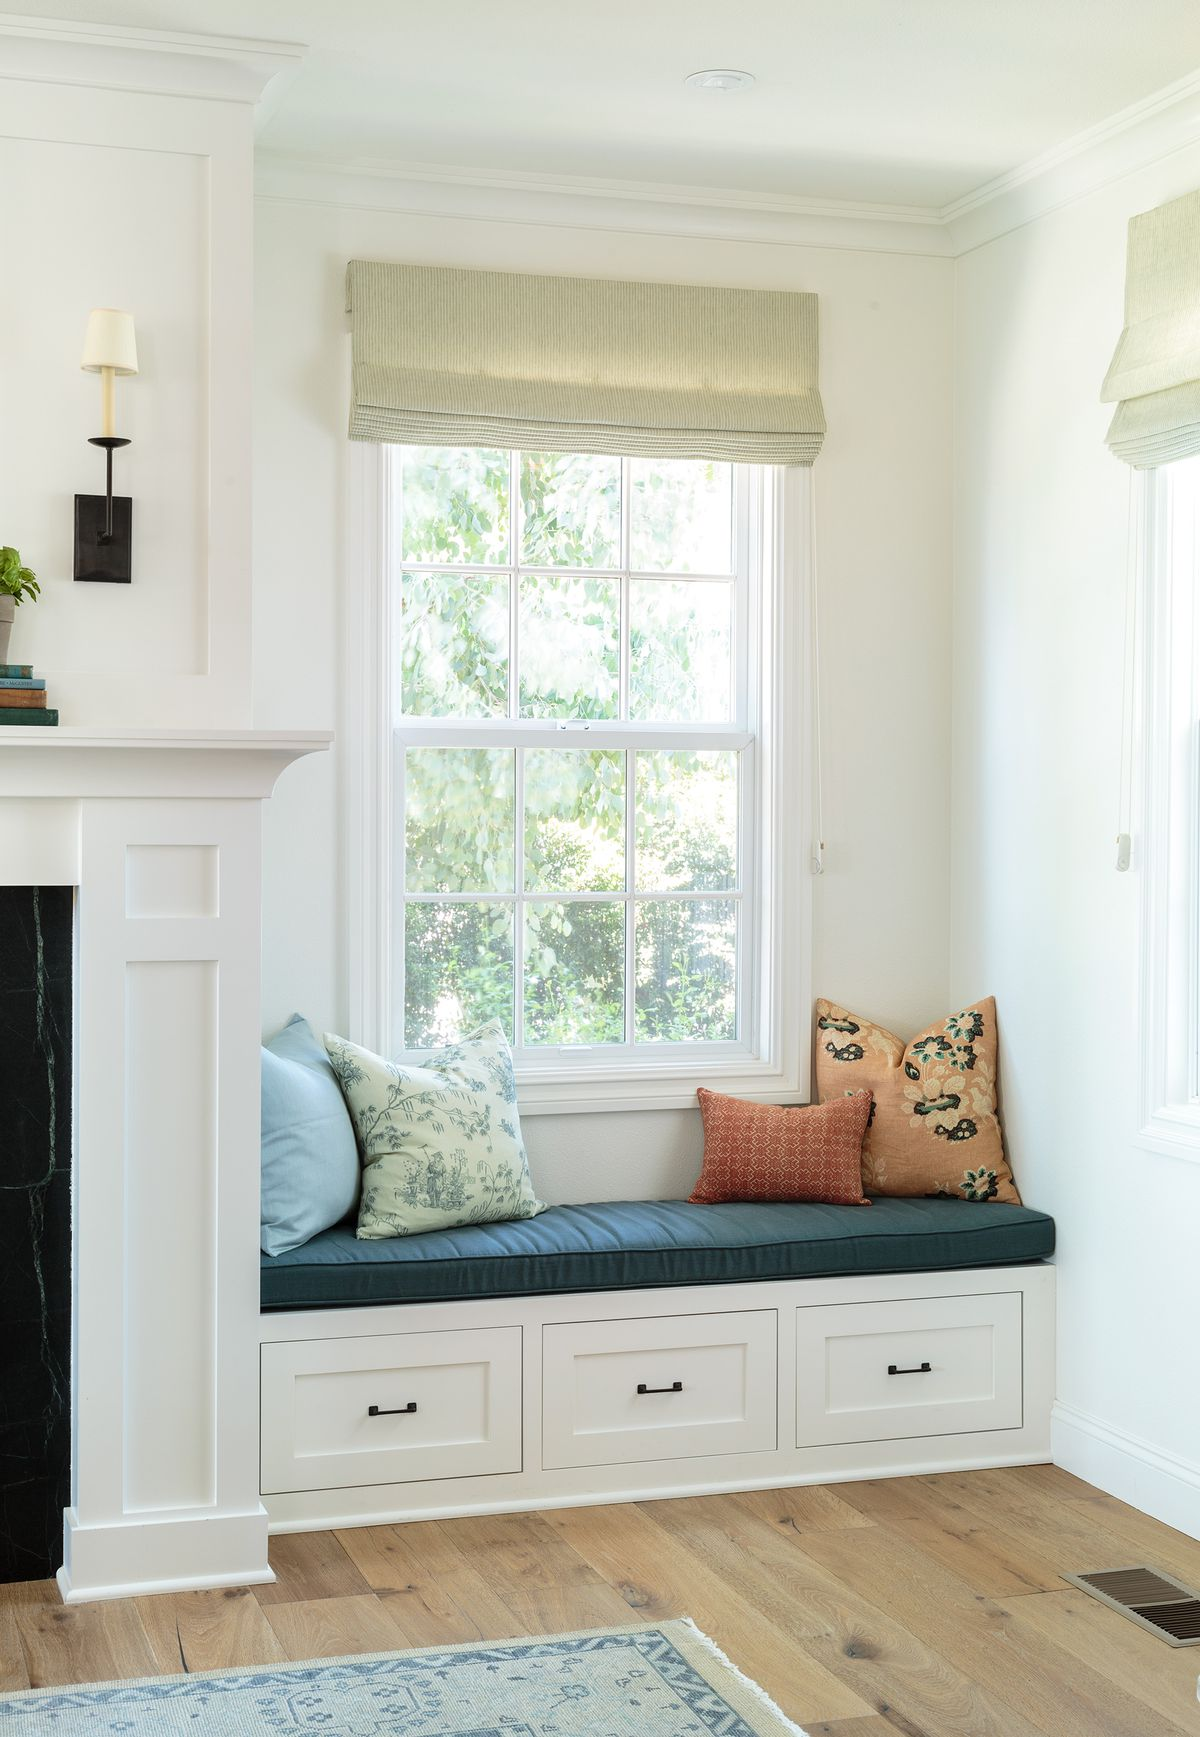 Cape Cod-style house remodel in Los Angeles, CA, window seating